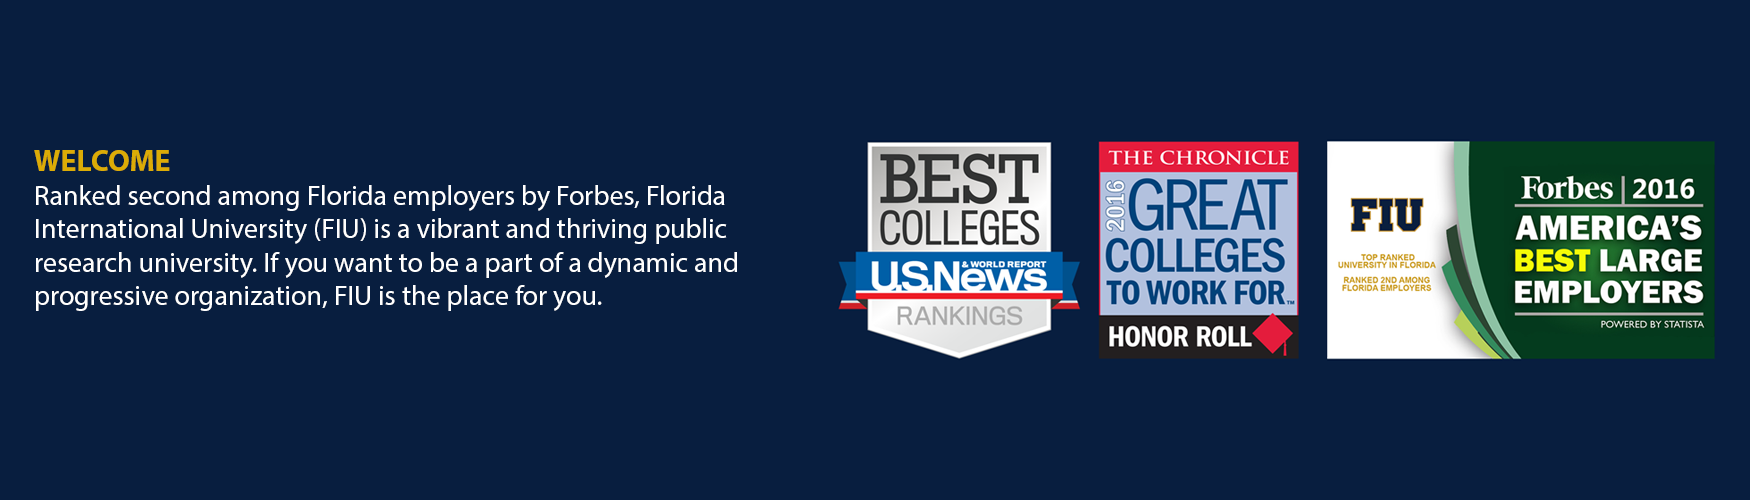 welcome slide, FIU rankings & facts info